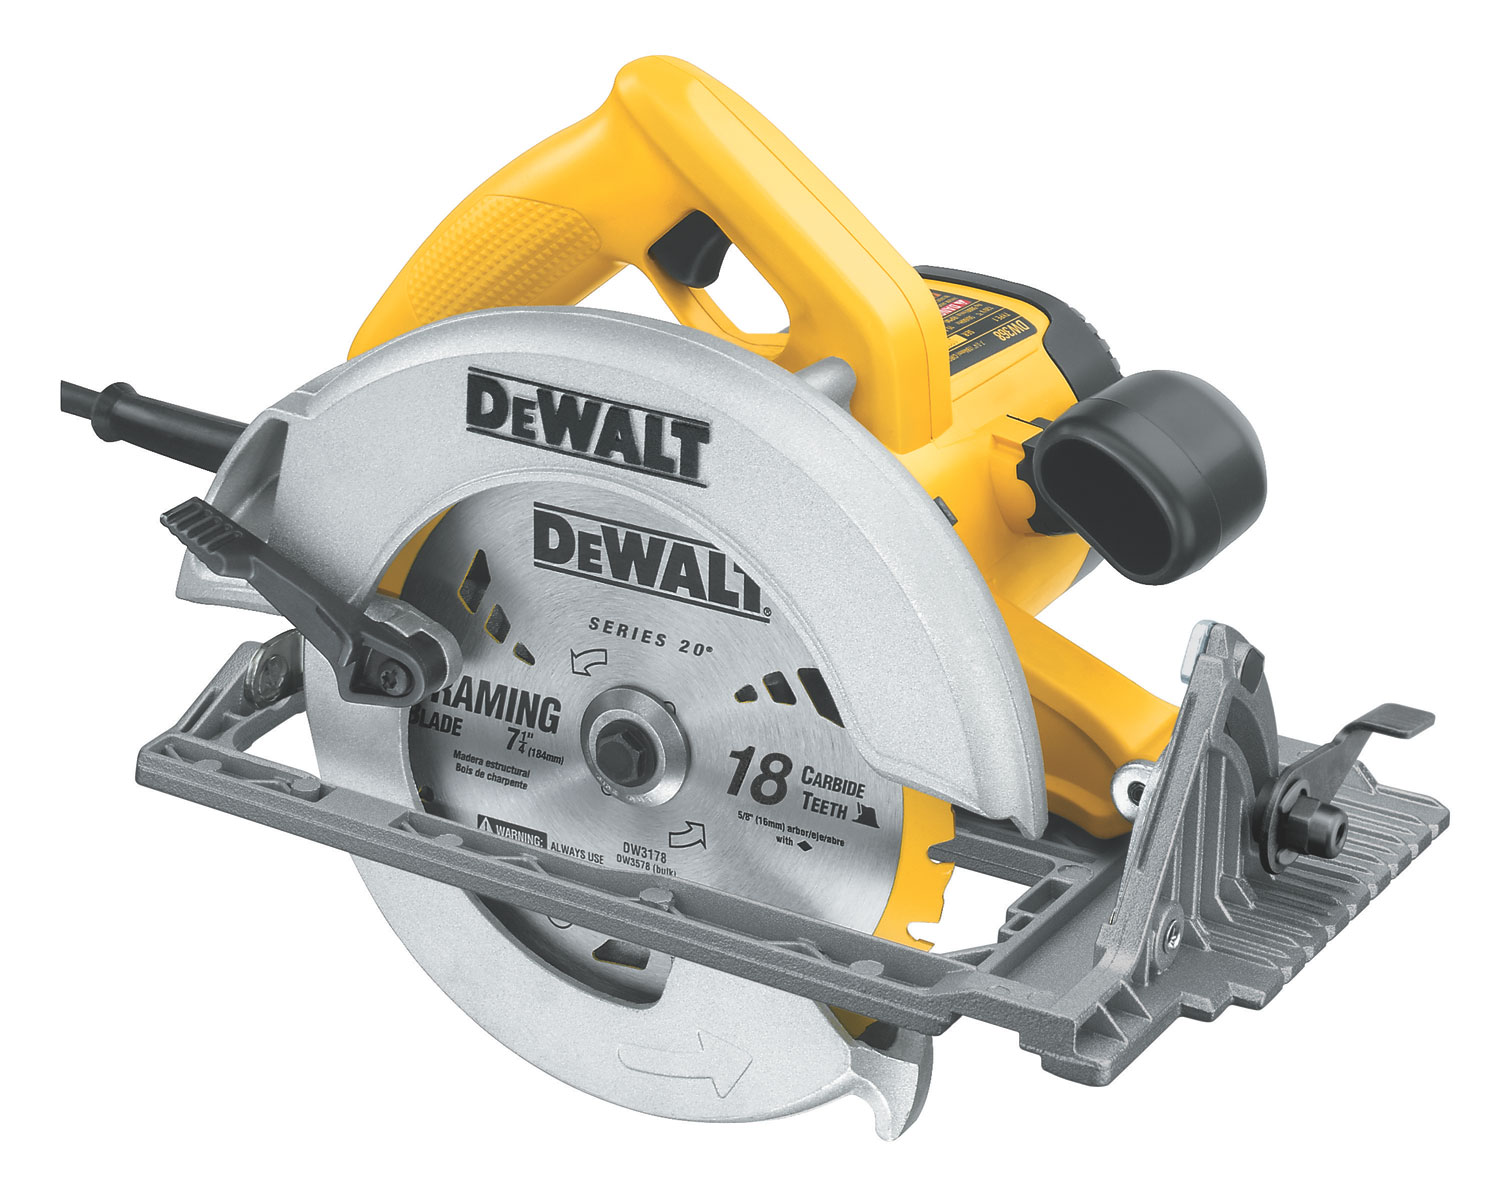 DeWalt Circular Saw Spares and Parts